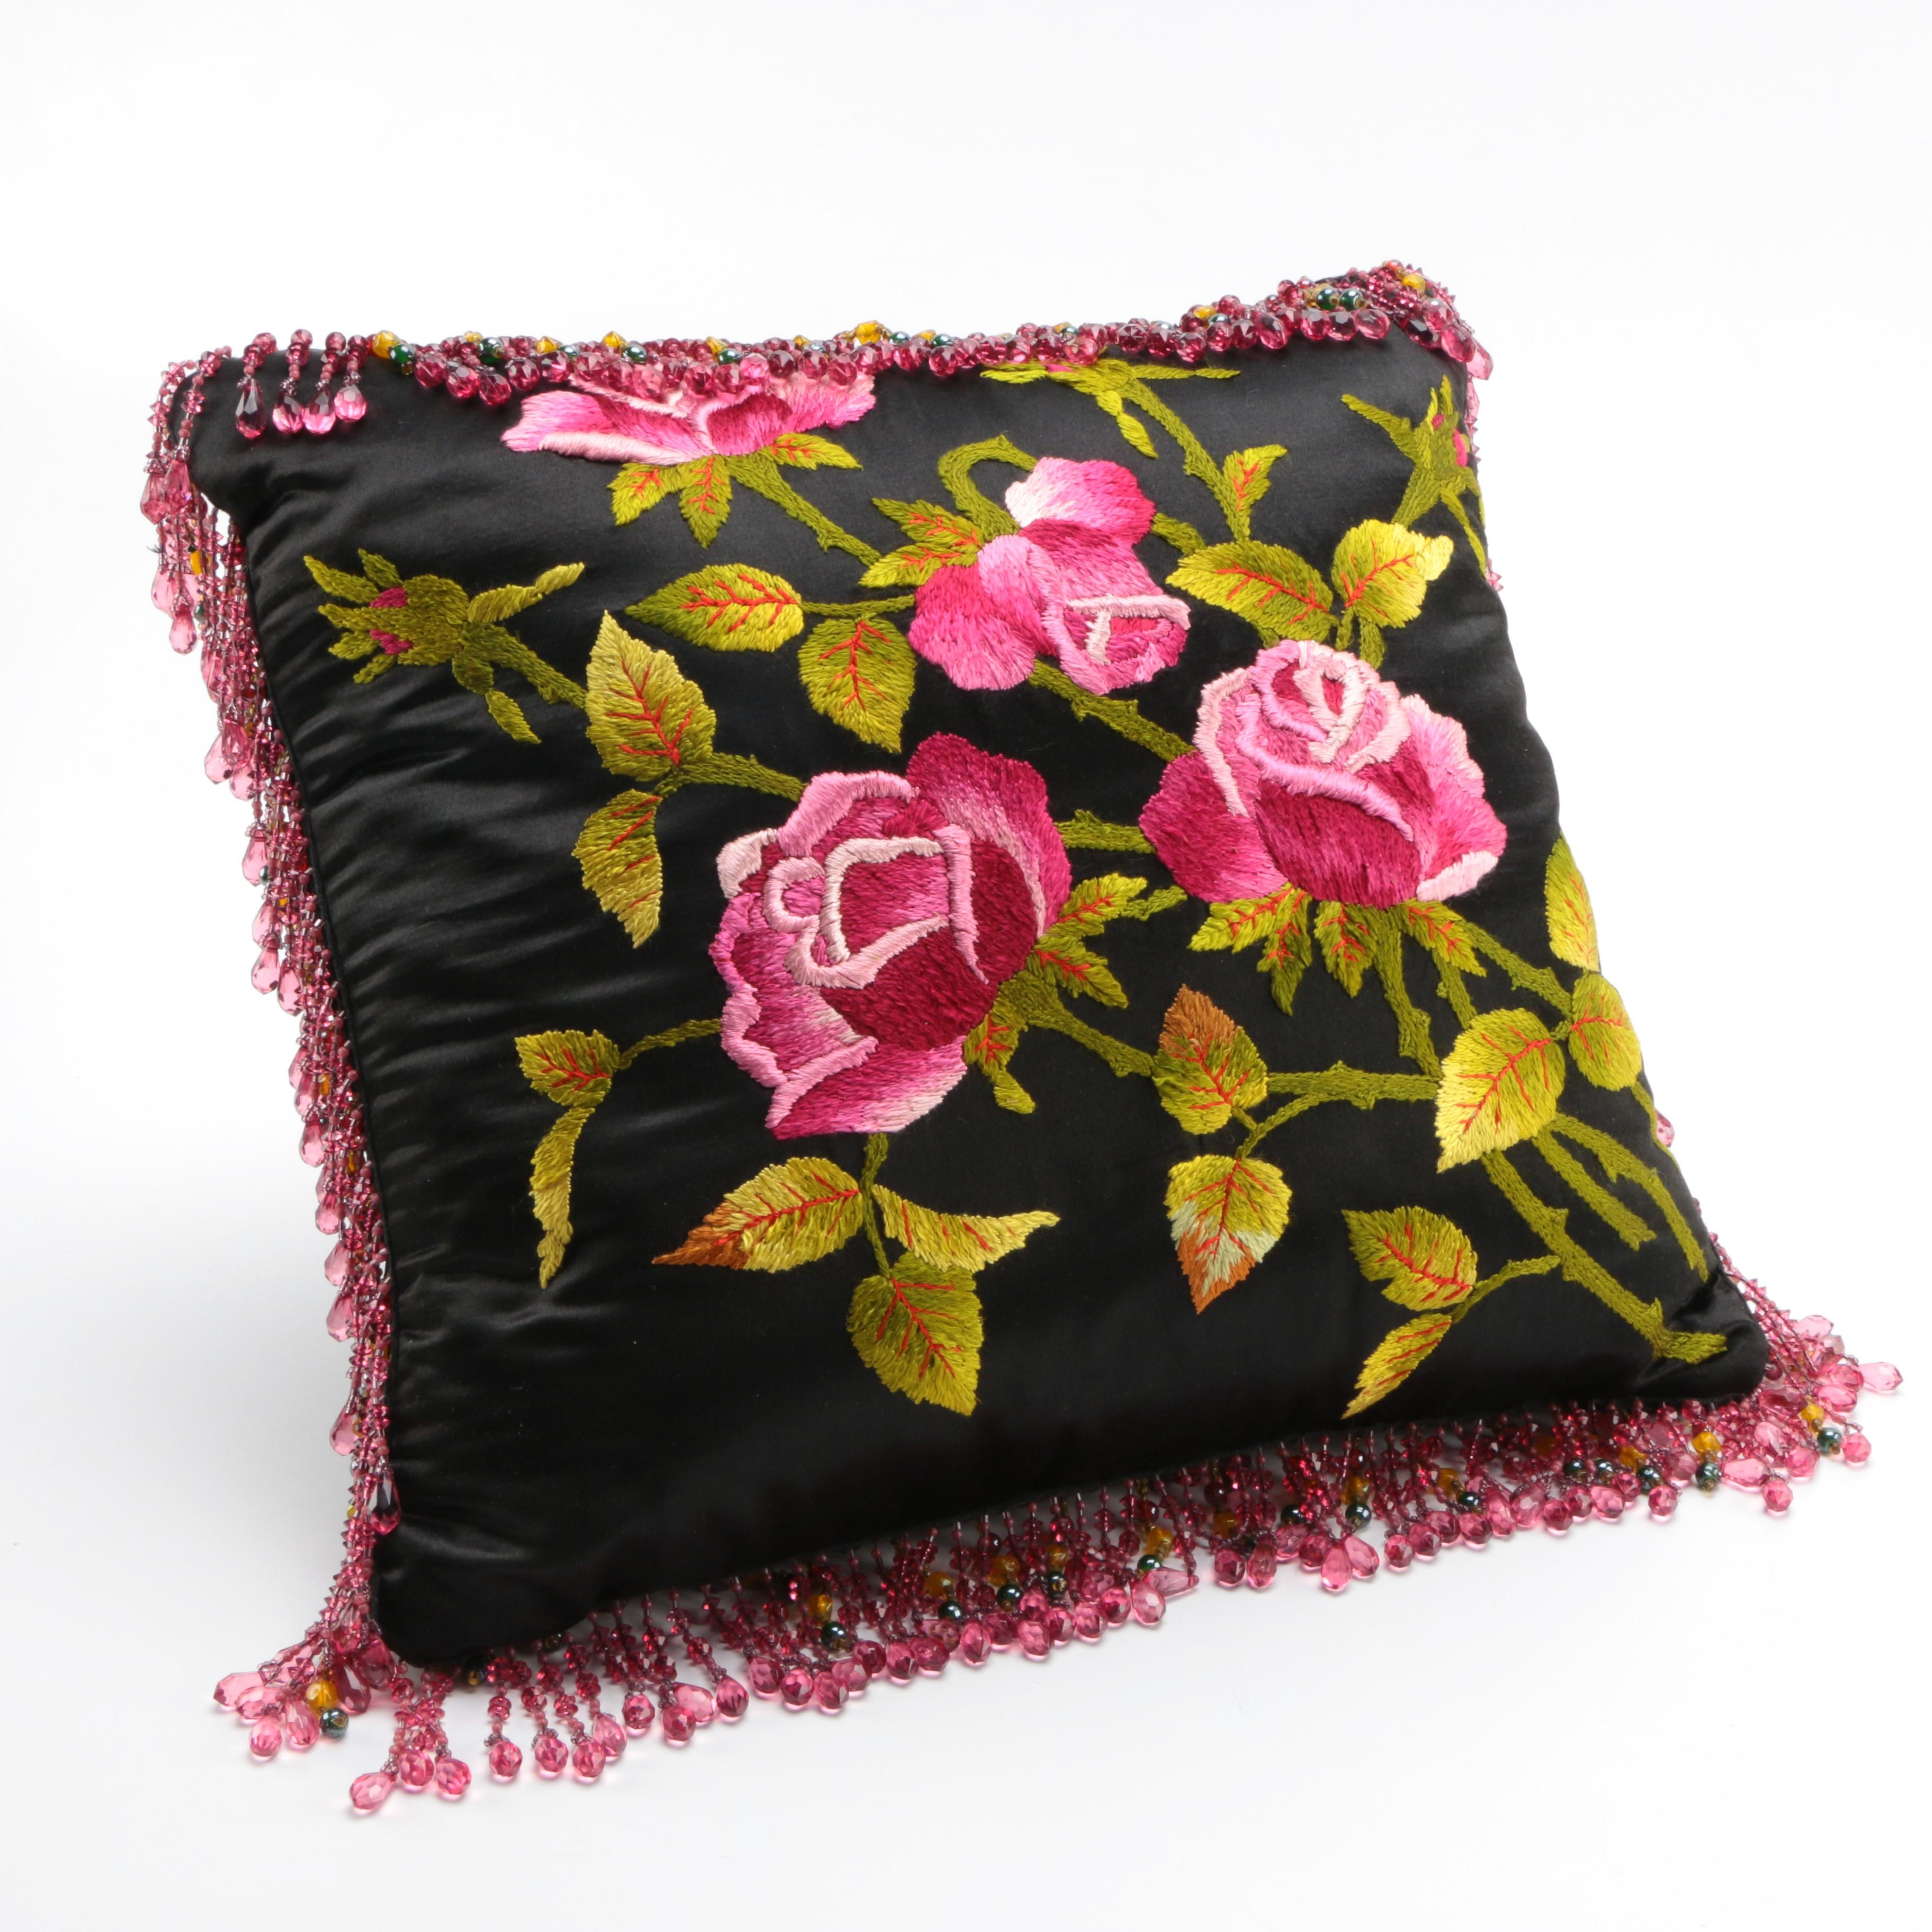 Beaded and Embroidered Floral Pillow